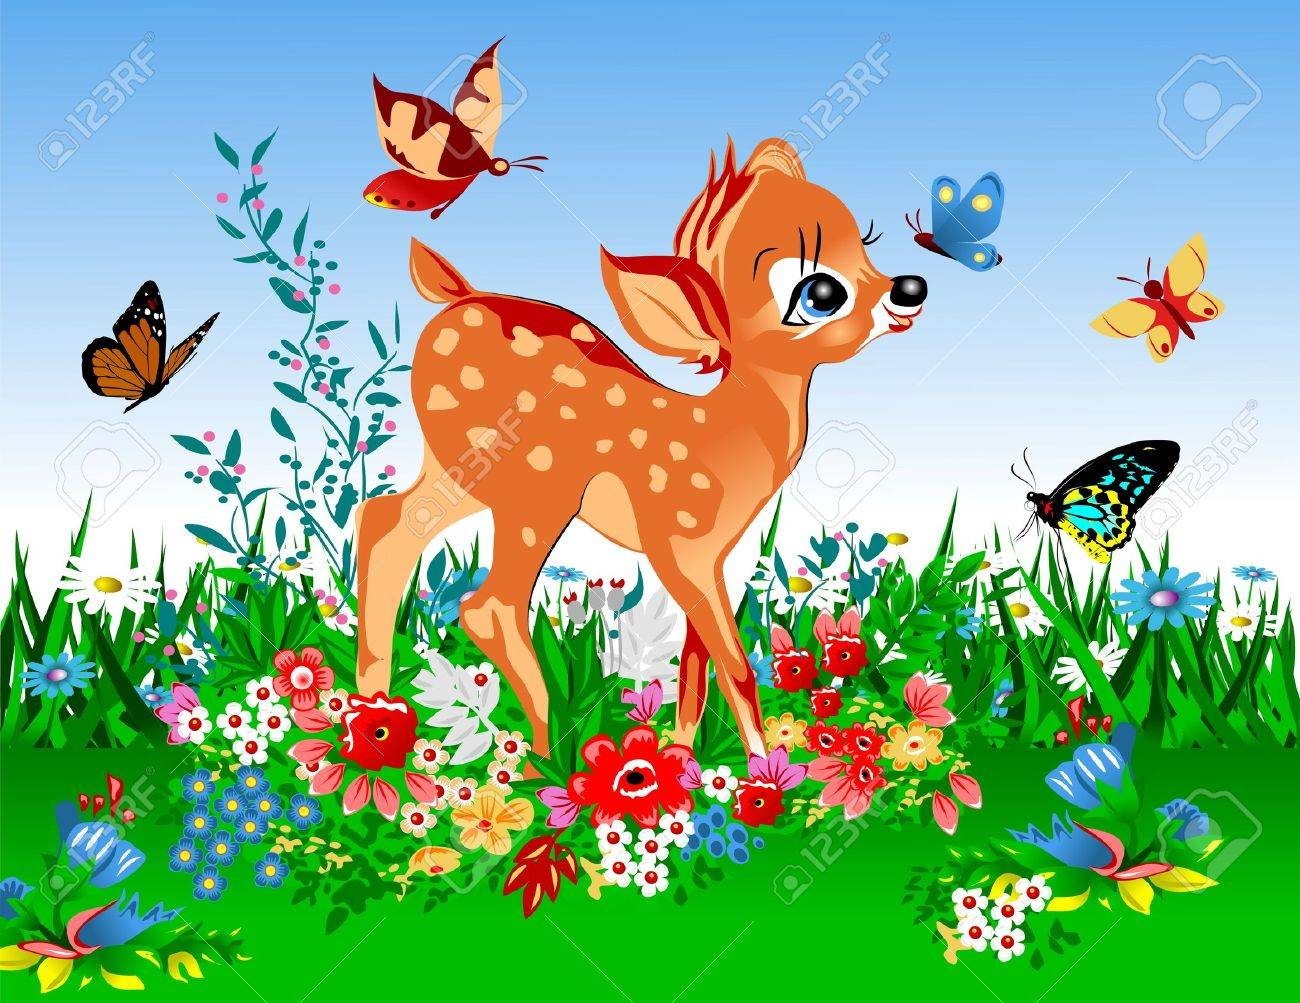 smallest deer in the spring meadow full of flowers and butterflies; Stock Vector - 13950603